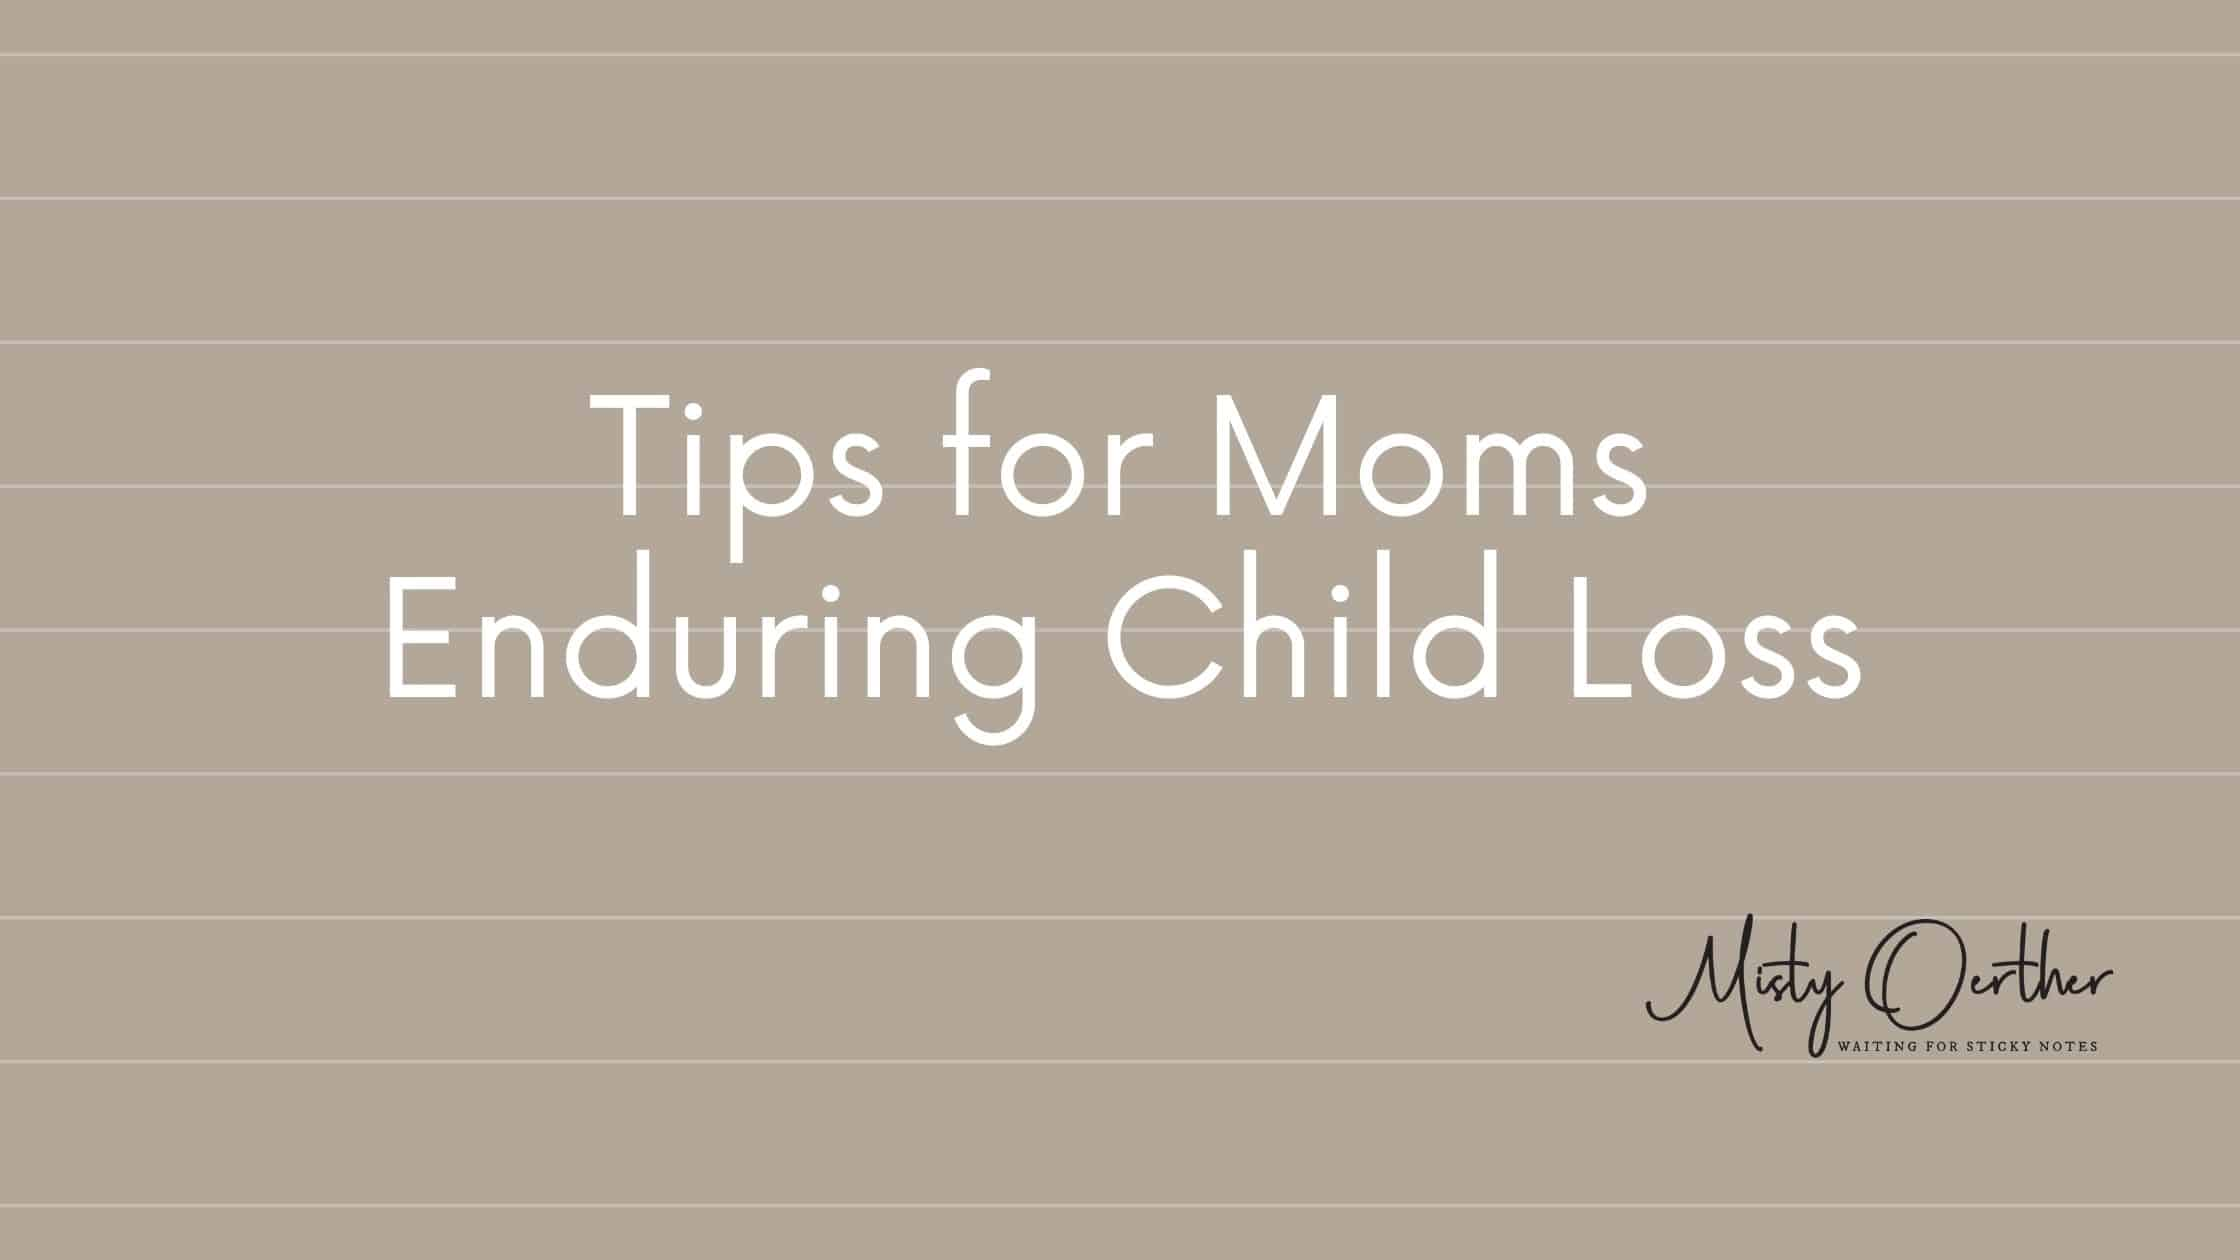 3 Tips for Moms Enduring Child Loss